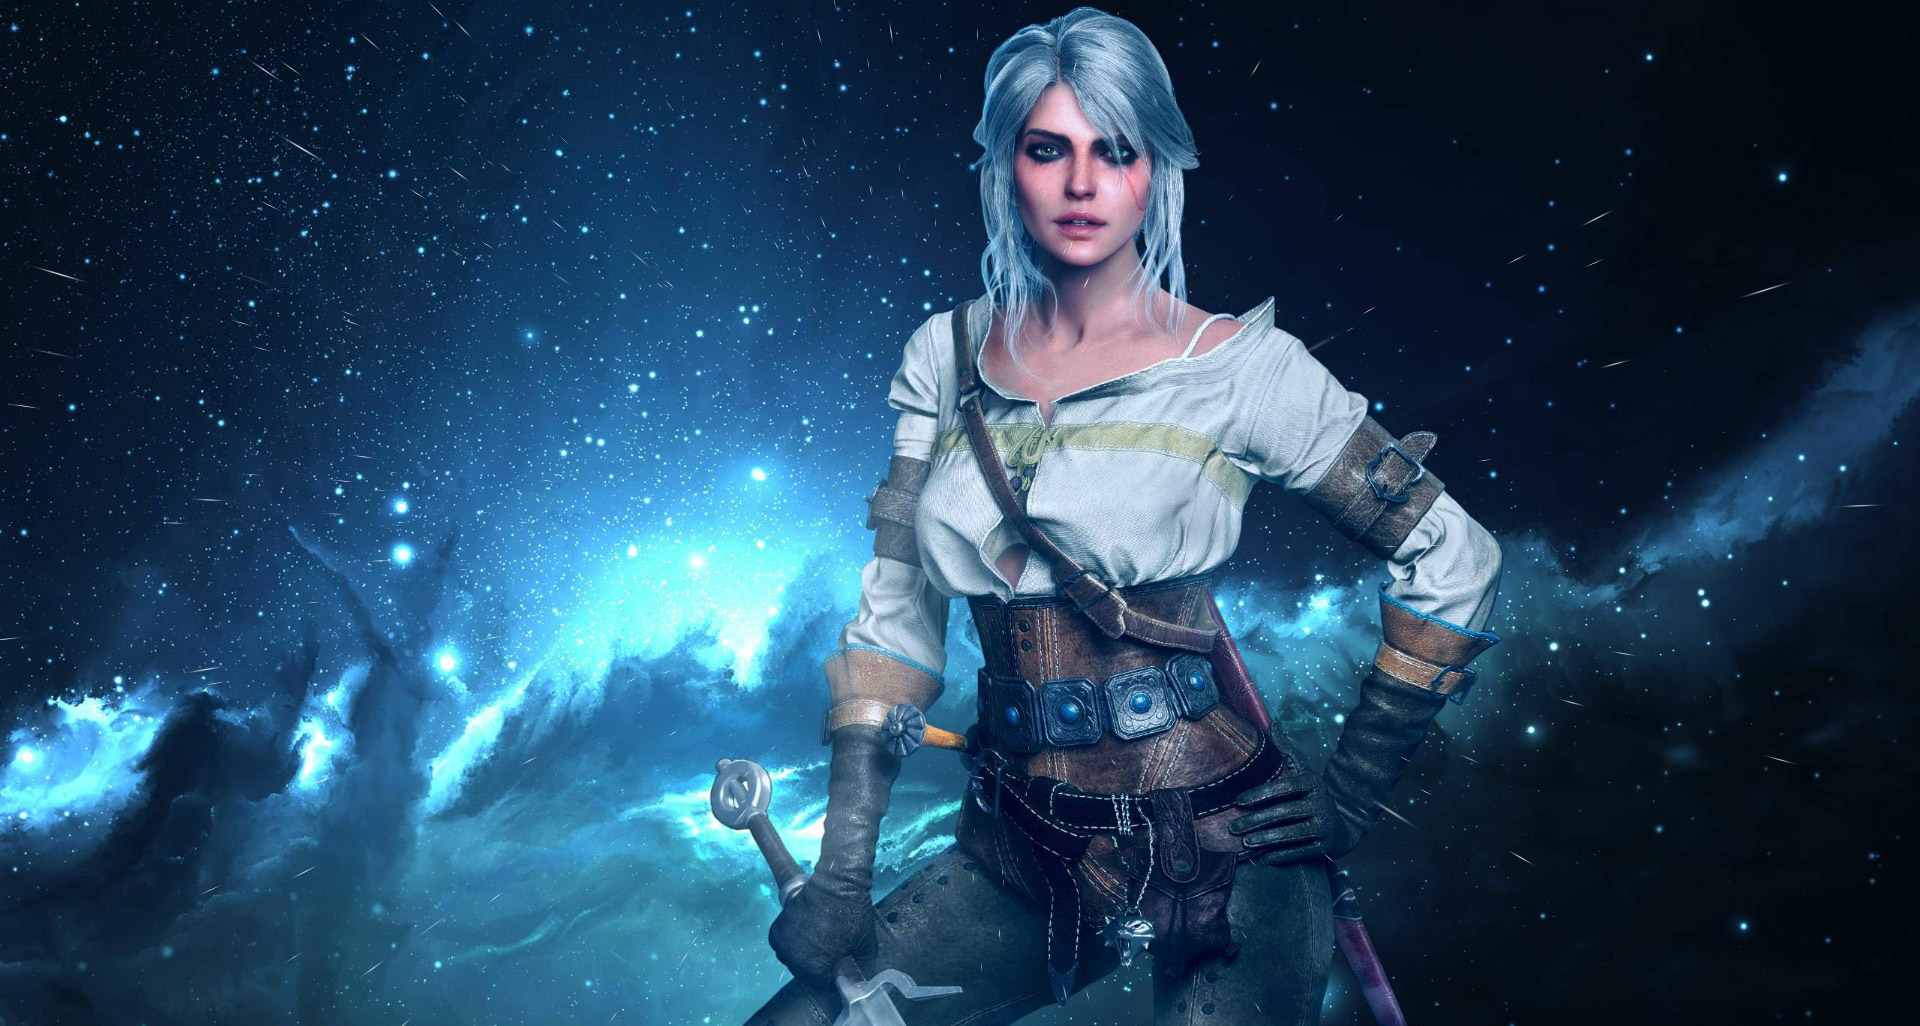 Ciri The Witcher 3 Animated Live Wallpaper